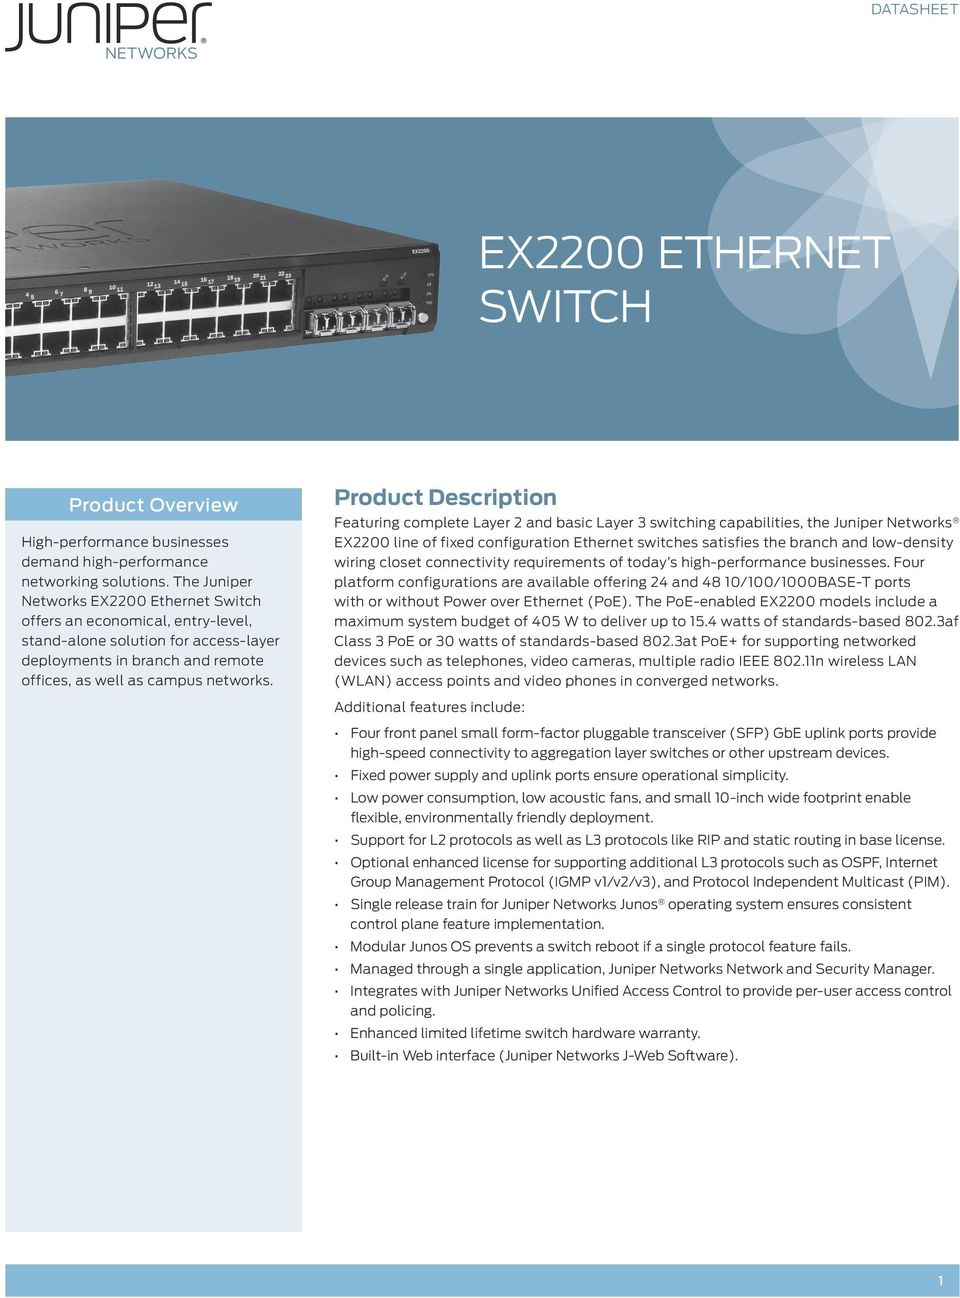 Product Description Featuring complete Layer 2 and basic Layer 3 switching capabilities, the Juniper Networks EX2200 line of fixed configuration Ethernet switches satisfies the branch and low-density